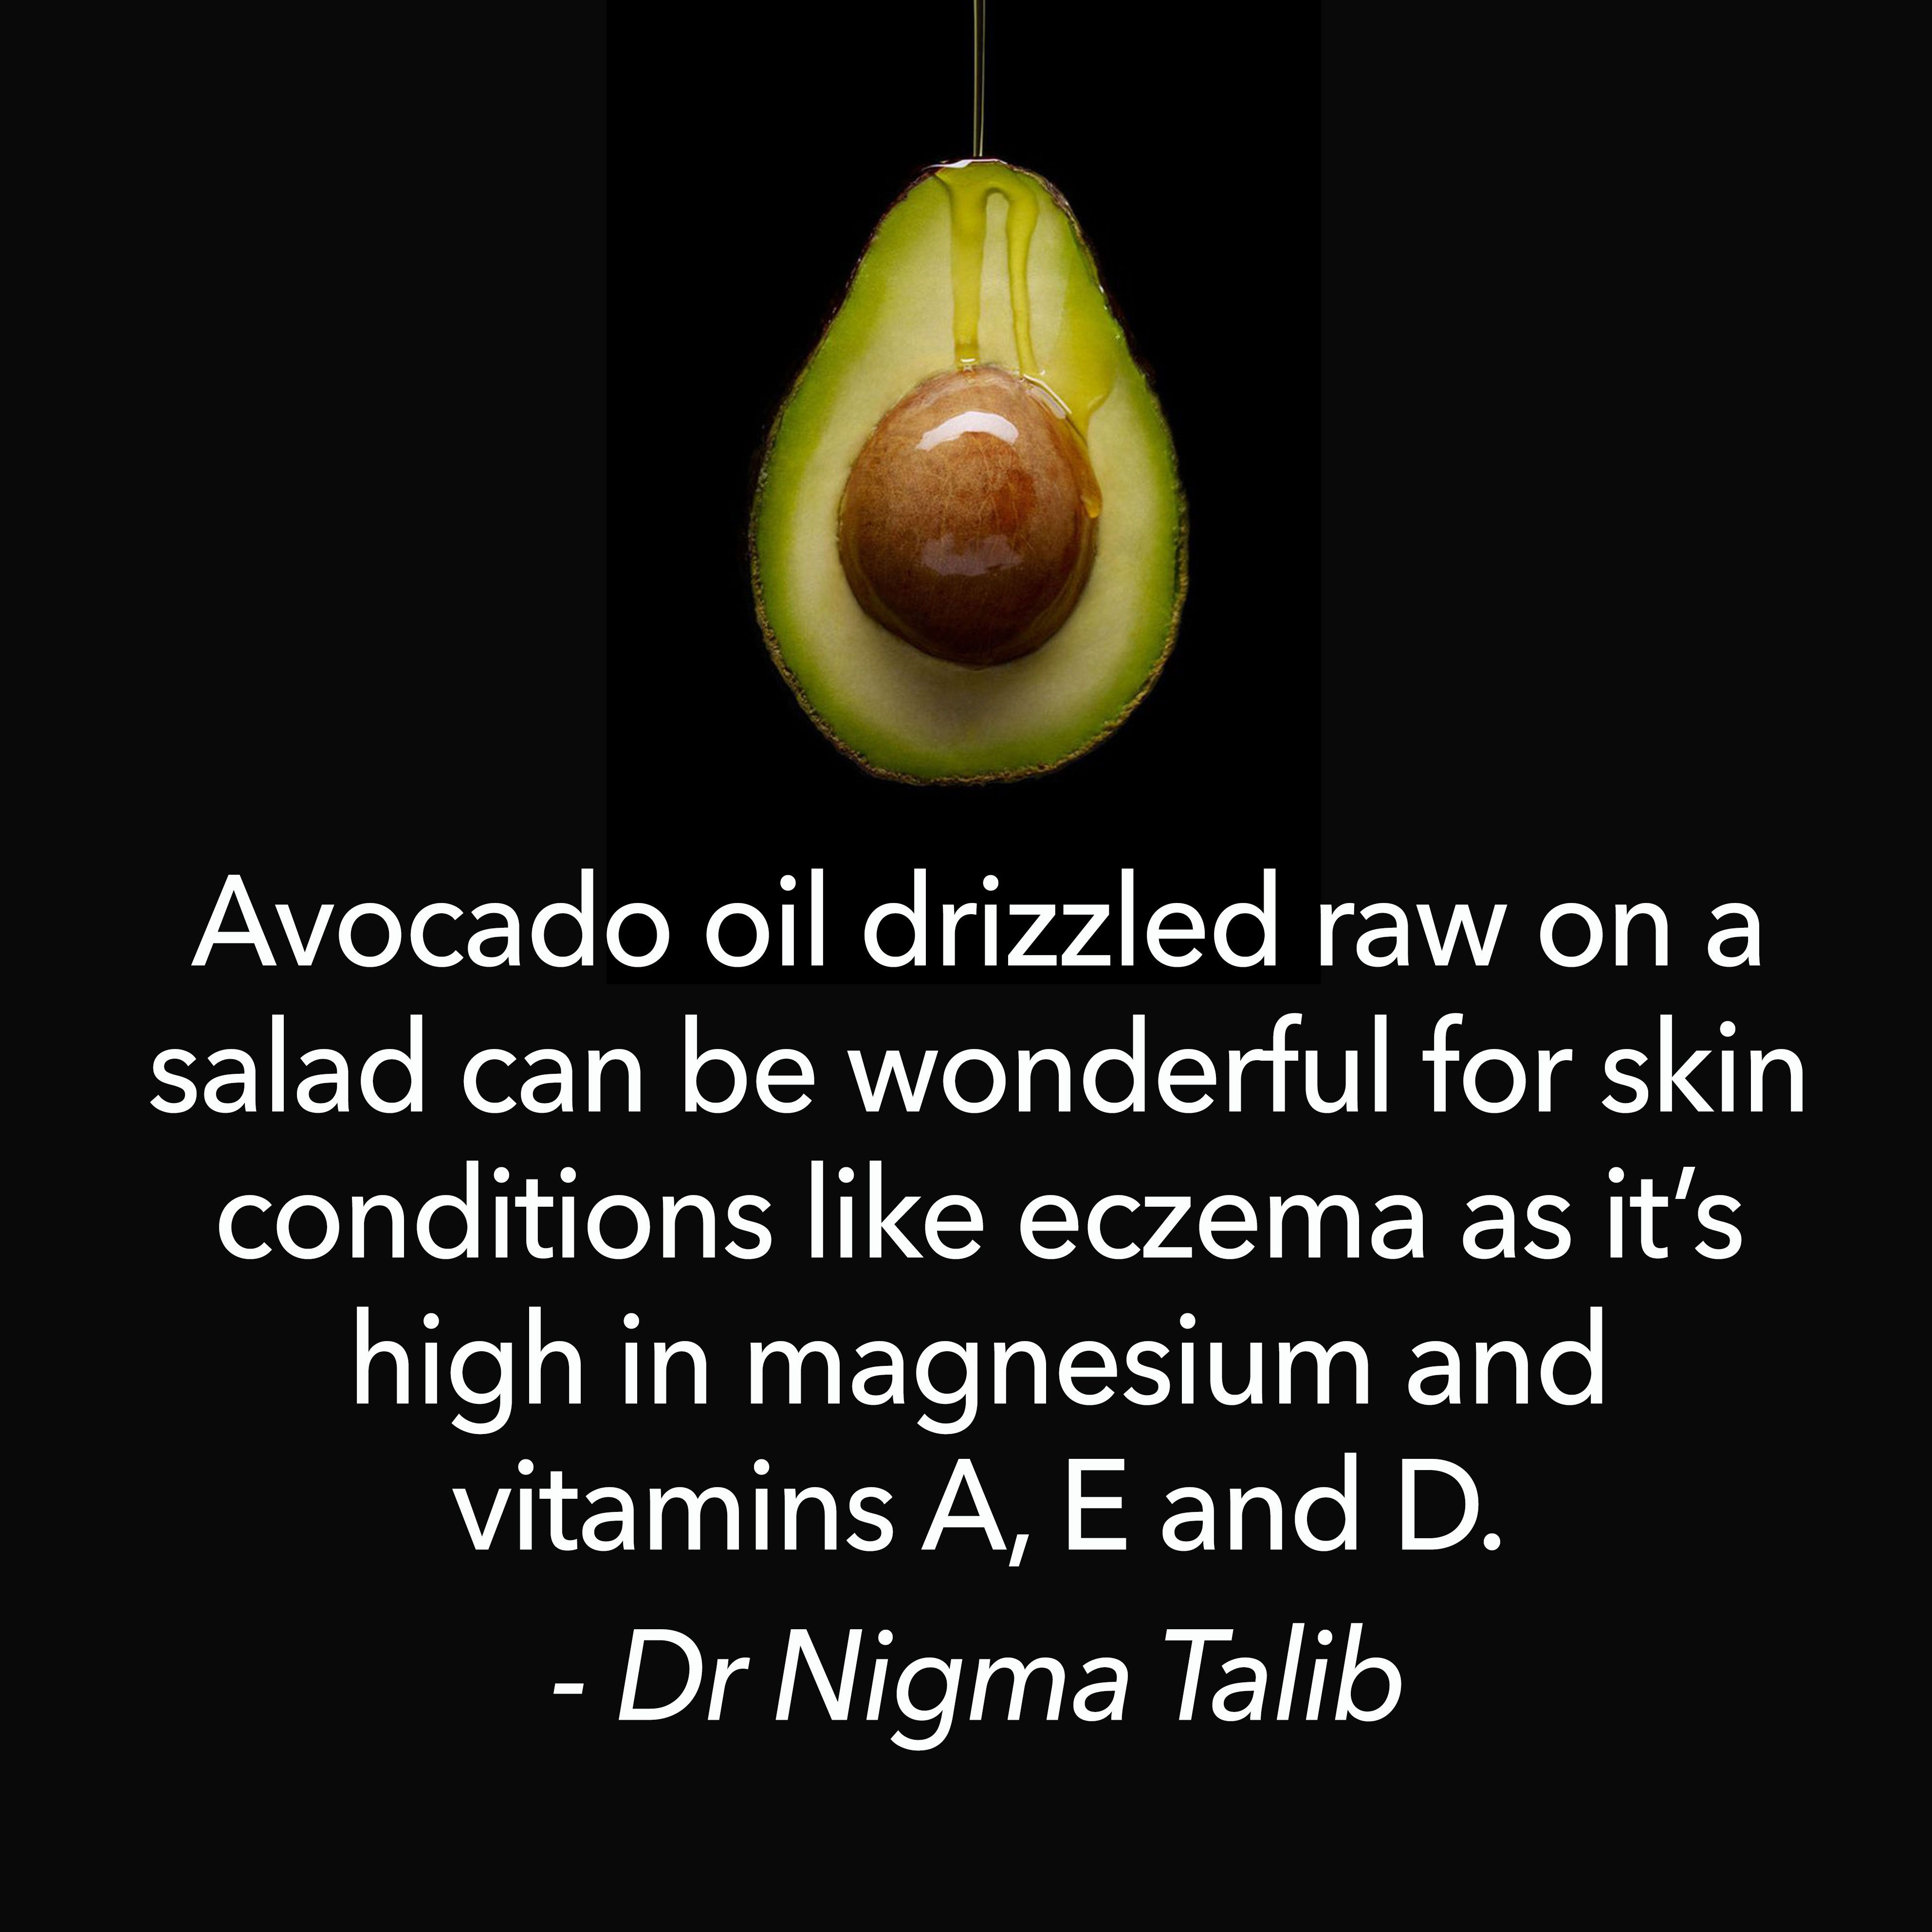 Avocado oil drizzled raw on salad can be wonderful for